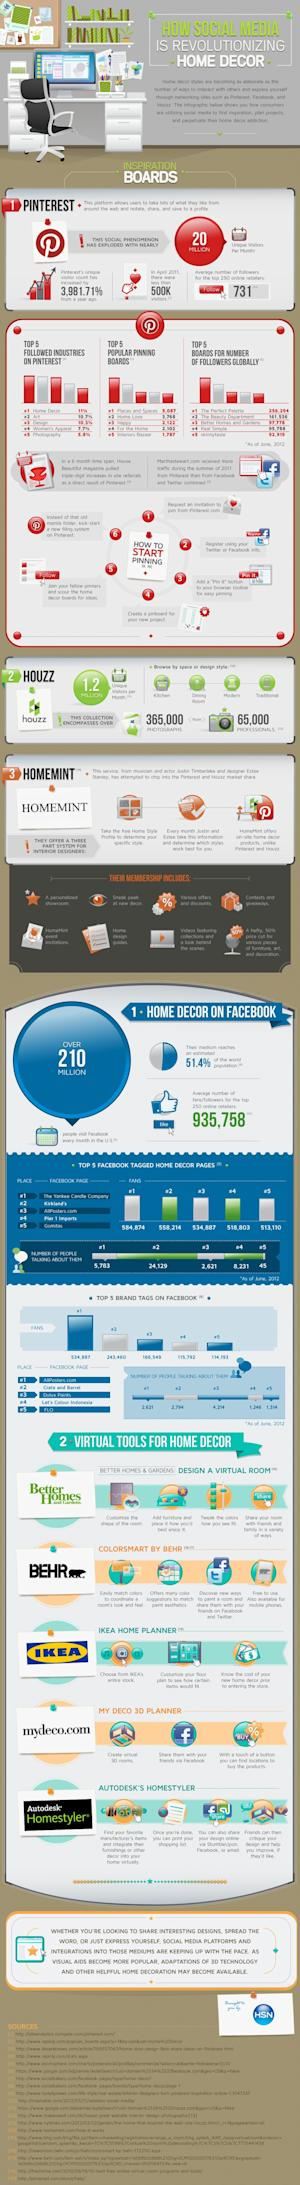 Social Media Has Revolutionized Home Decorating [INFOGRAPHIC]